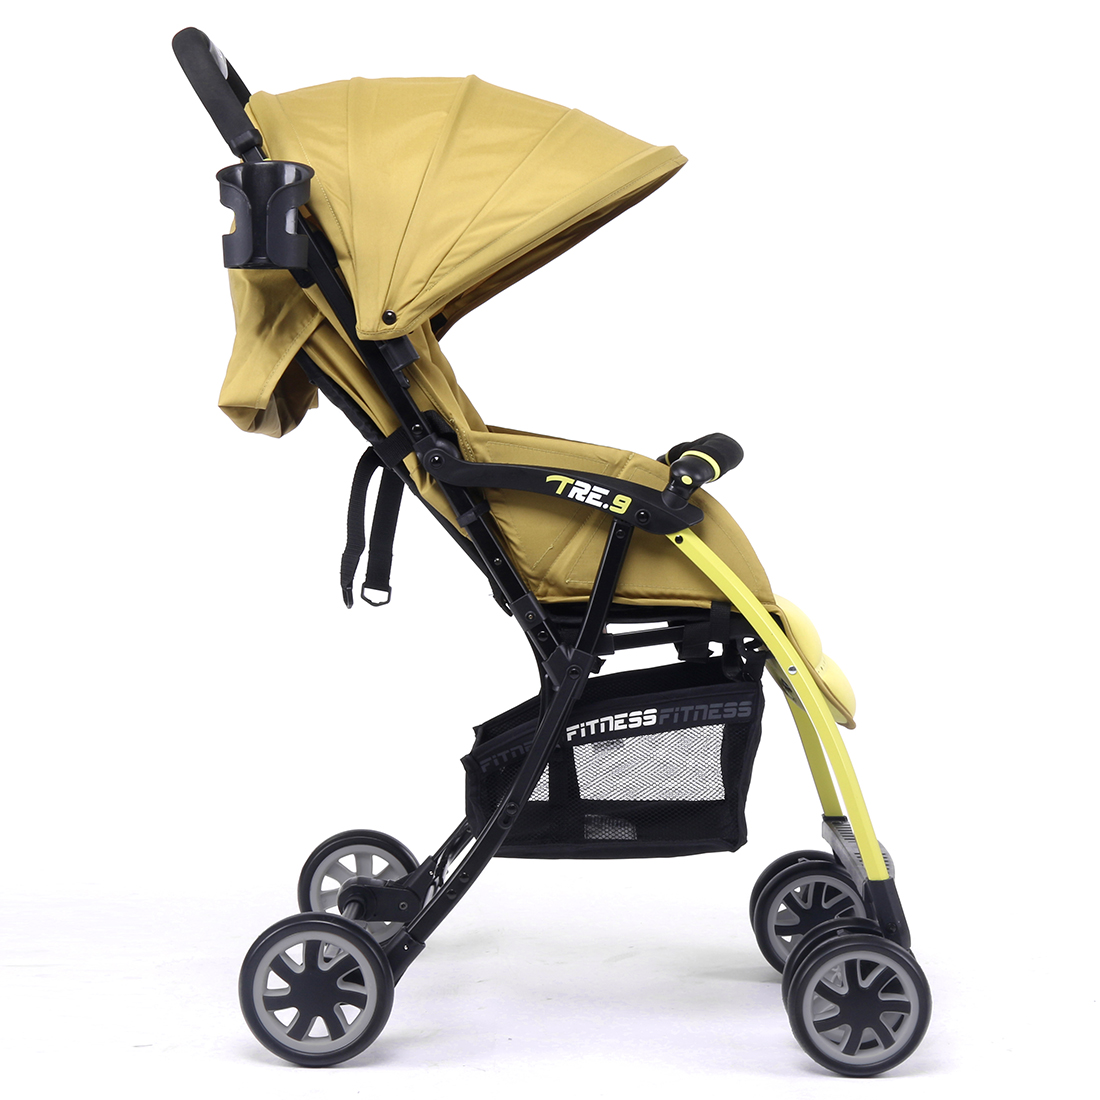 Pali Ultra Lightweight Tre.9 Stroller Fitness Fashion in Brasil Green - Only 11 lbs.